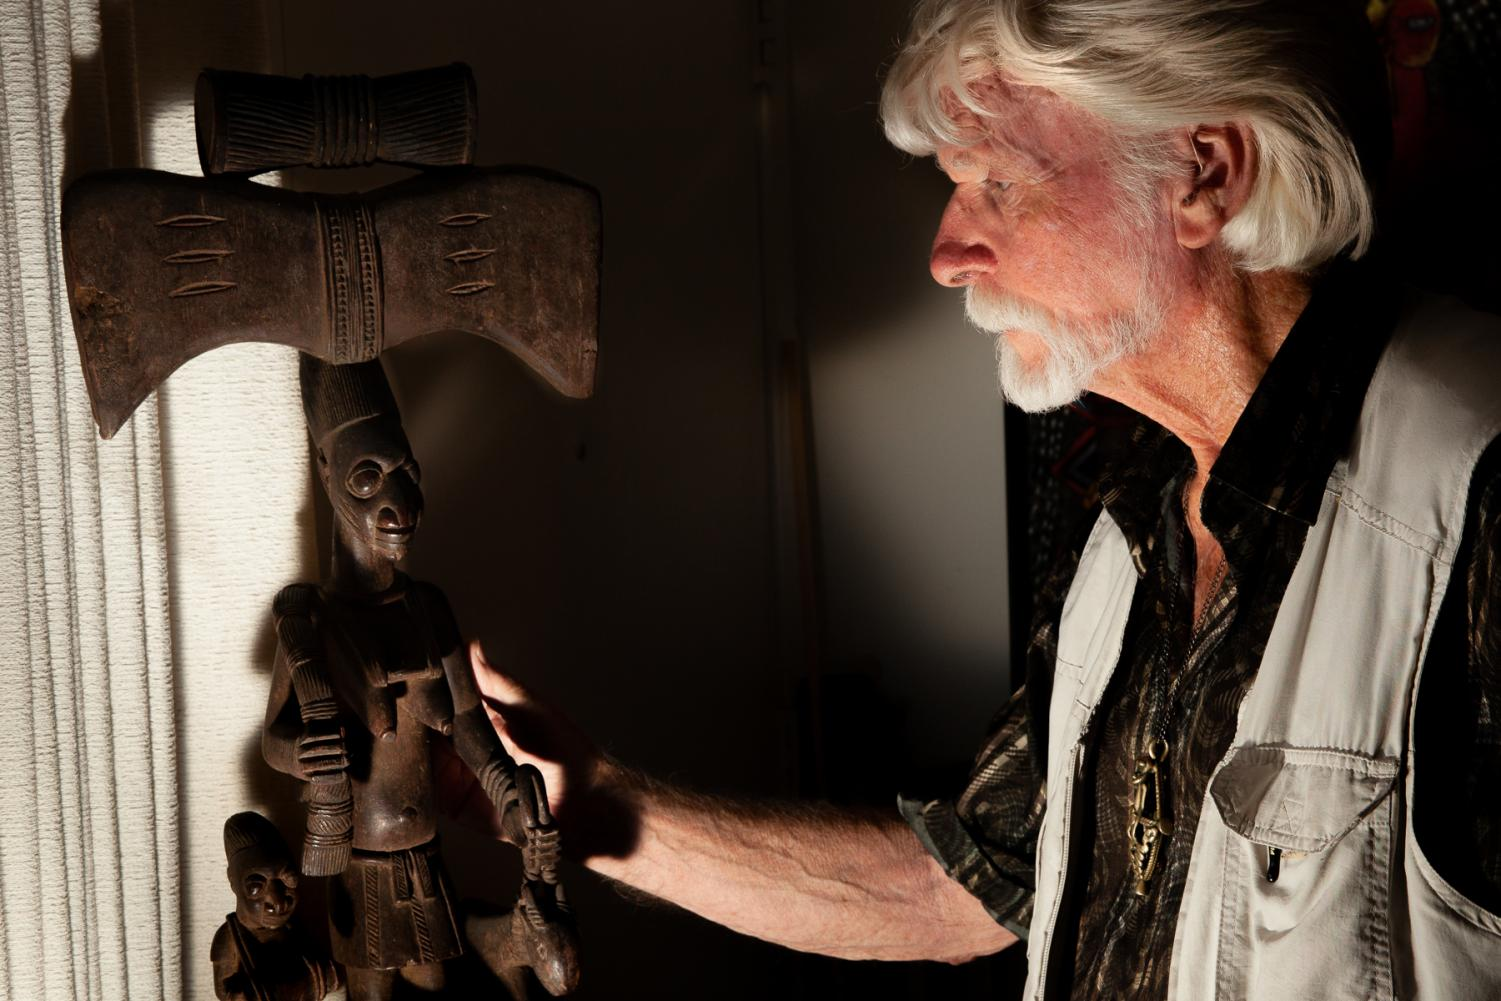 Ron Atwood admires a Shrine sculpture to the powerful Shango god of thunder of a female worshiper with a thunder celt headpiece and talking drum, one of his most valuable and prized pieces.